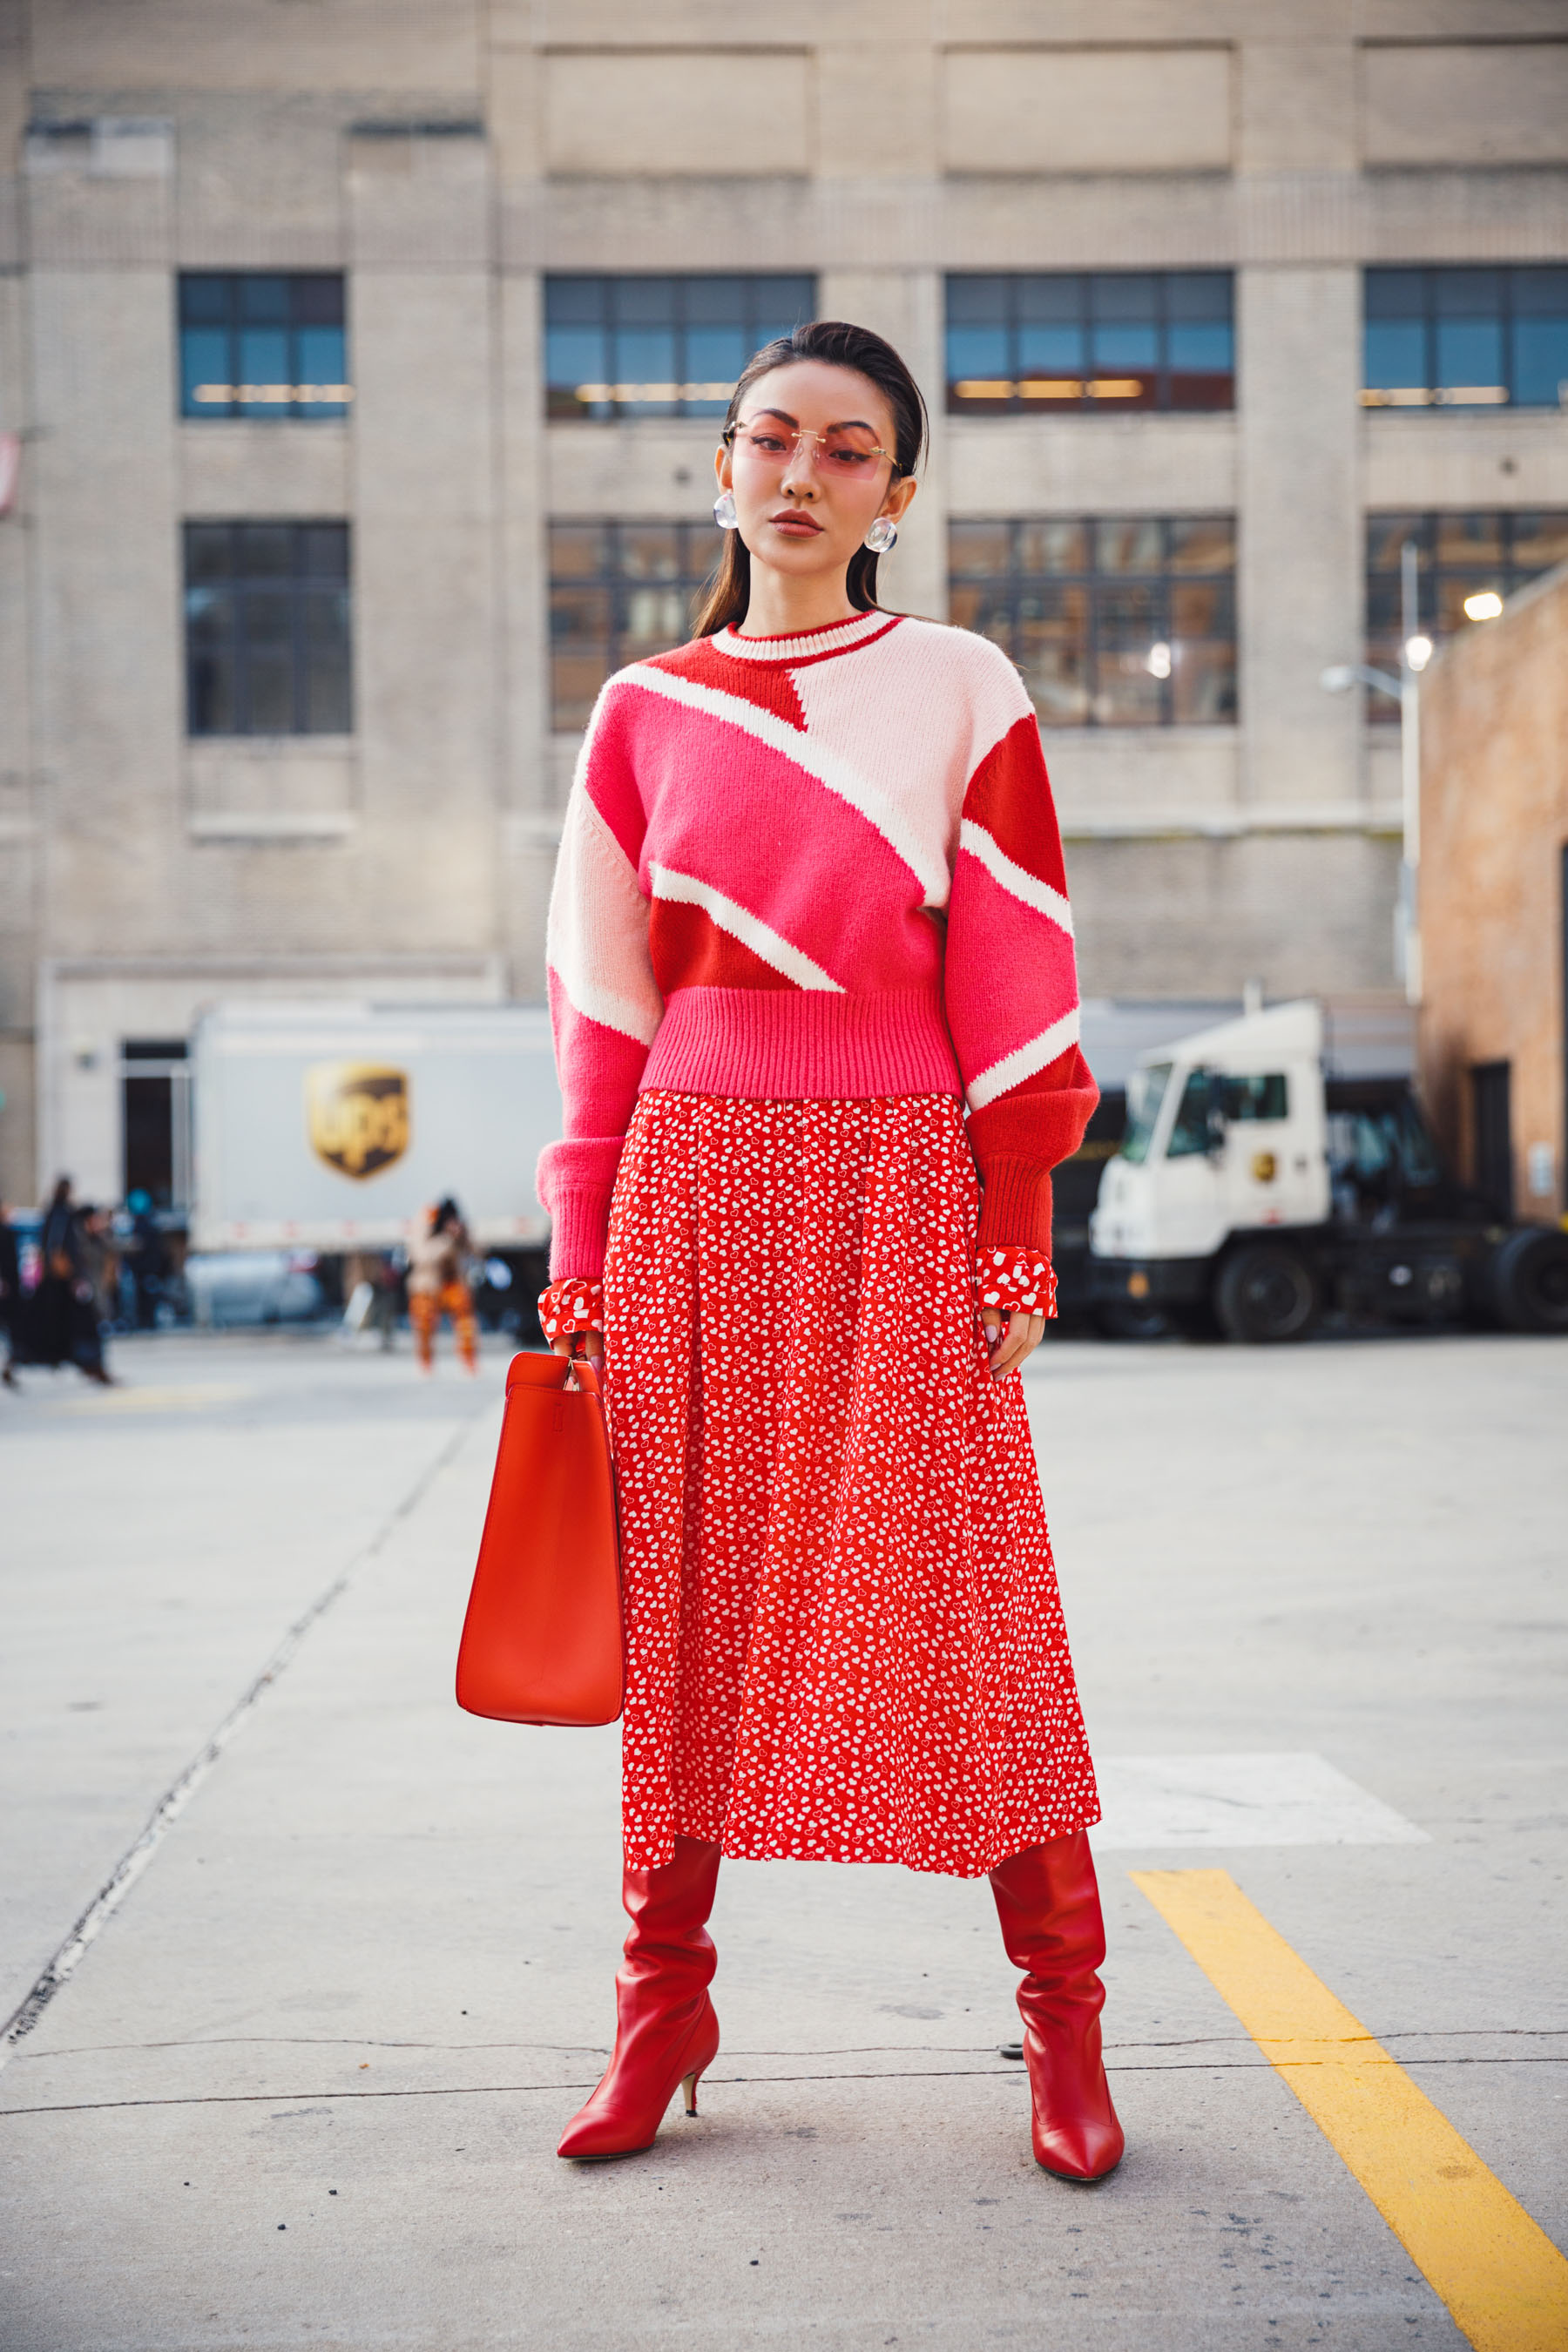 NYFW Day 5 Street Style // Notjessfashion.com // Pink and red outfit